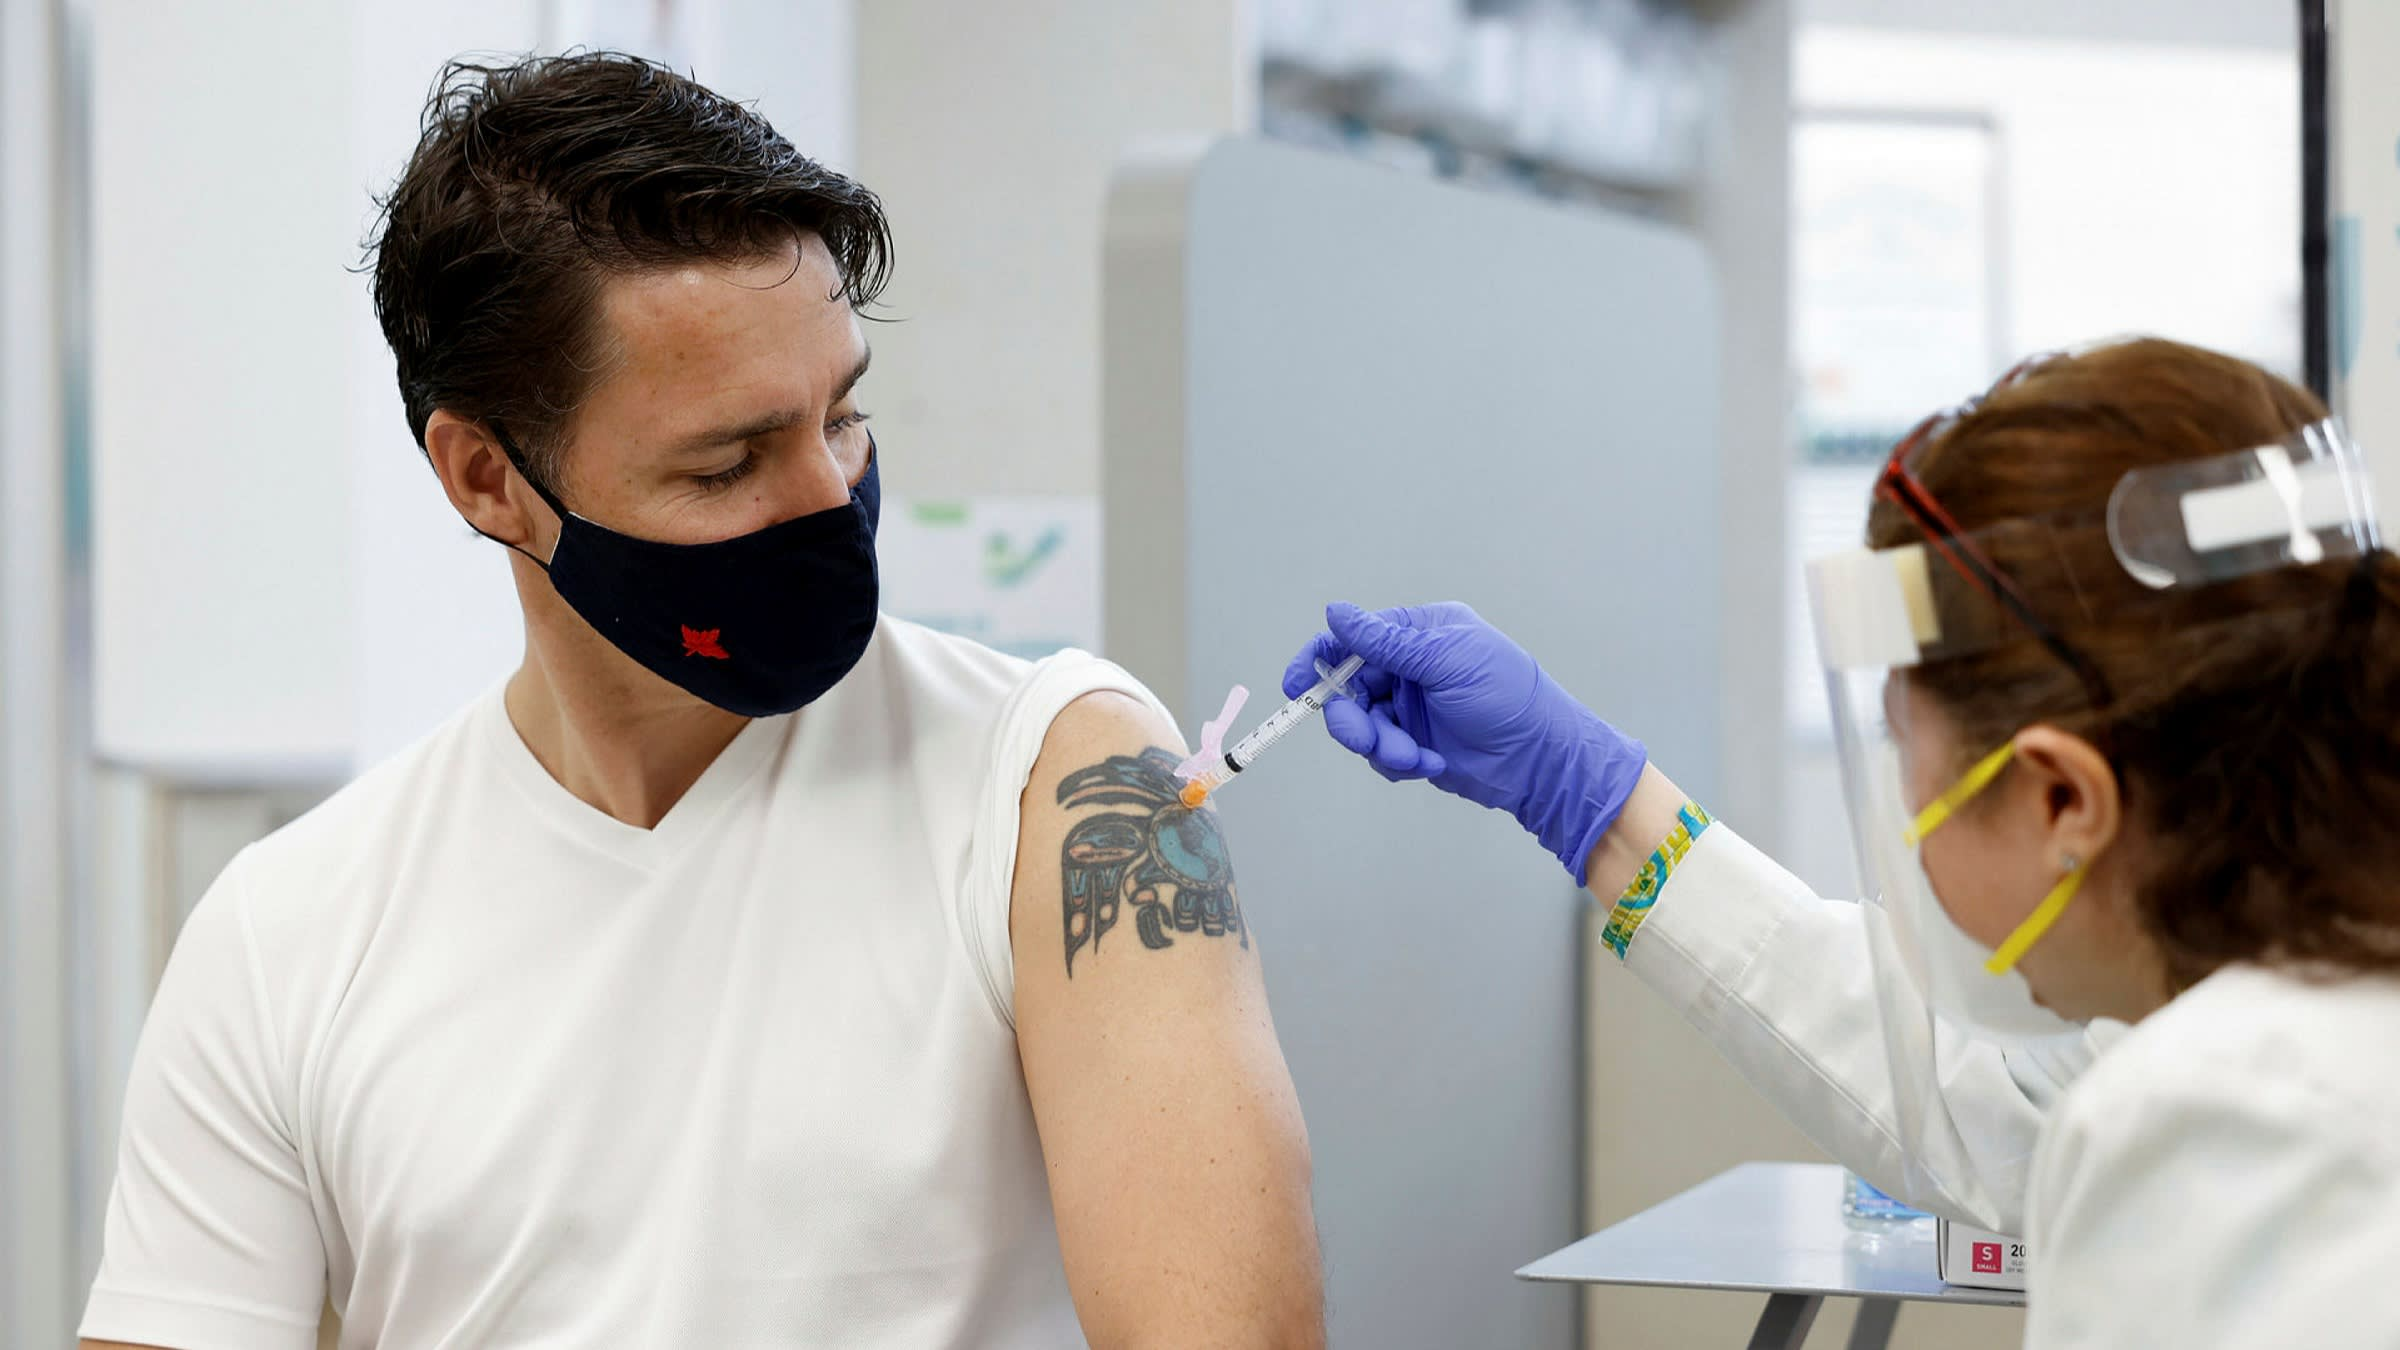 Coronavirus Trudeau Says No Travel To Canada By Unvaccinated Tourists For Quite A While As It Happened Financial Times